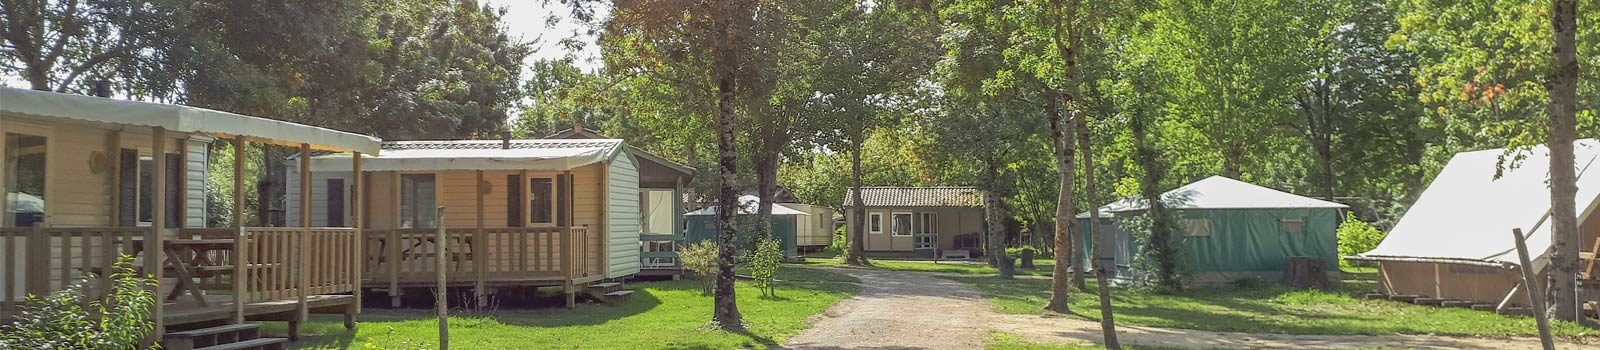 location chalets camping Lidon